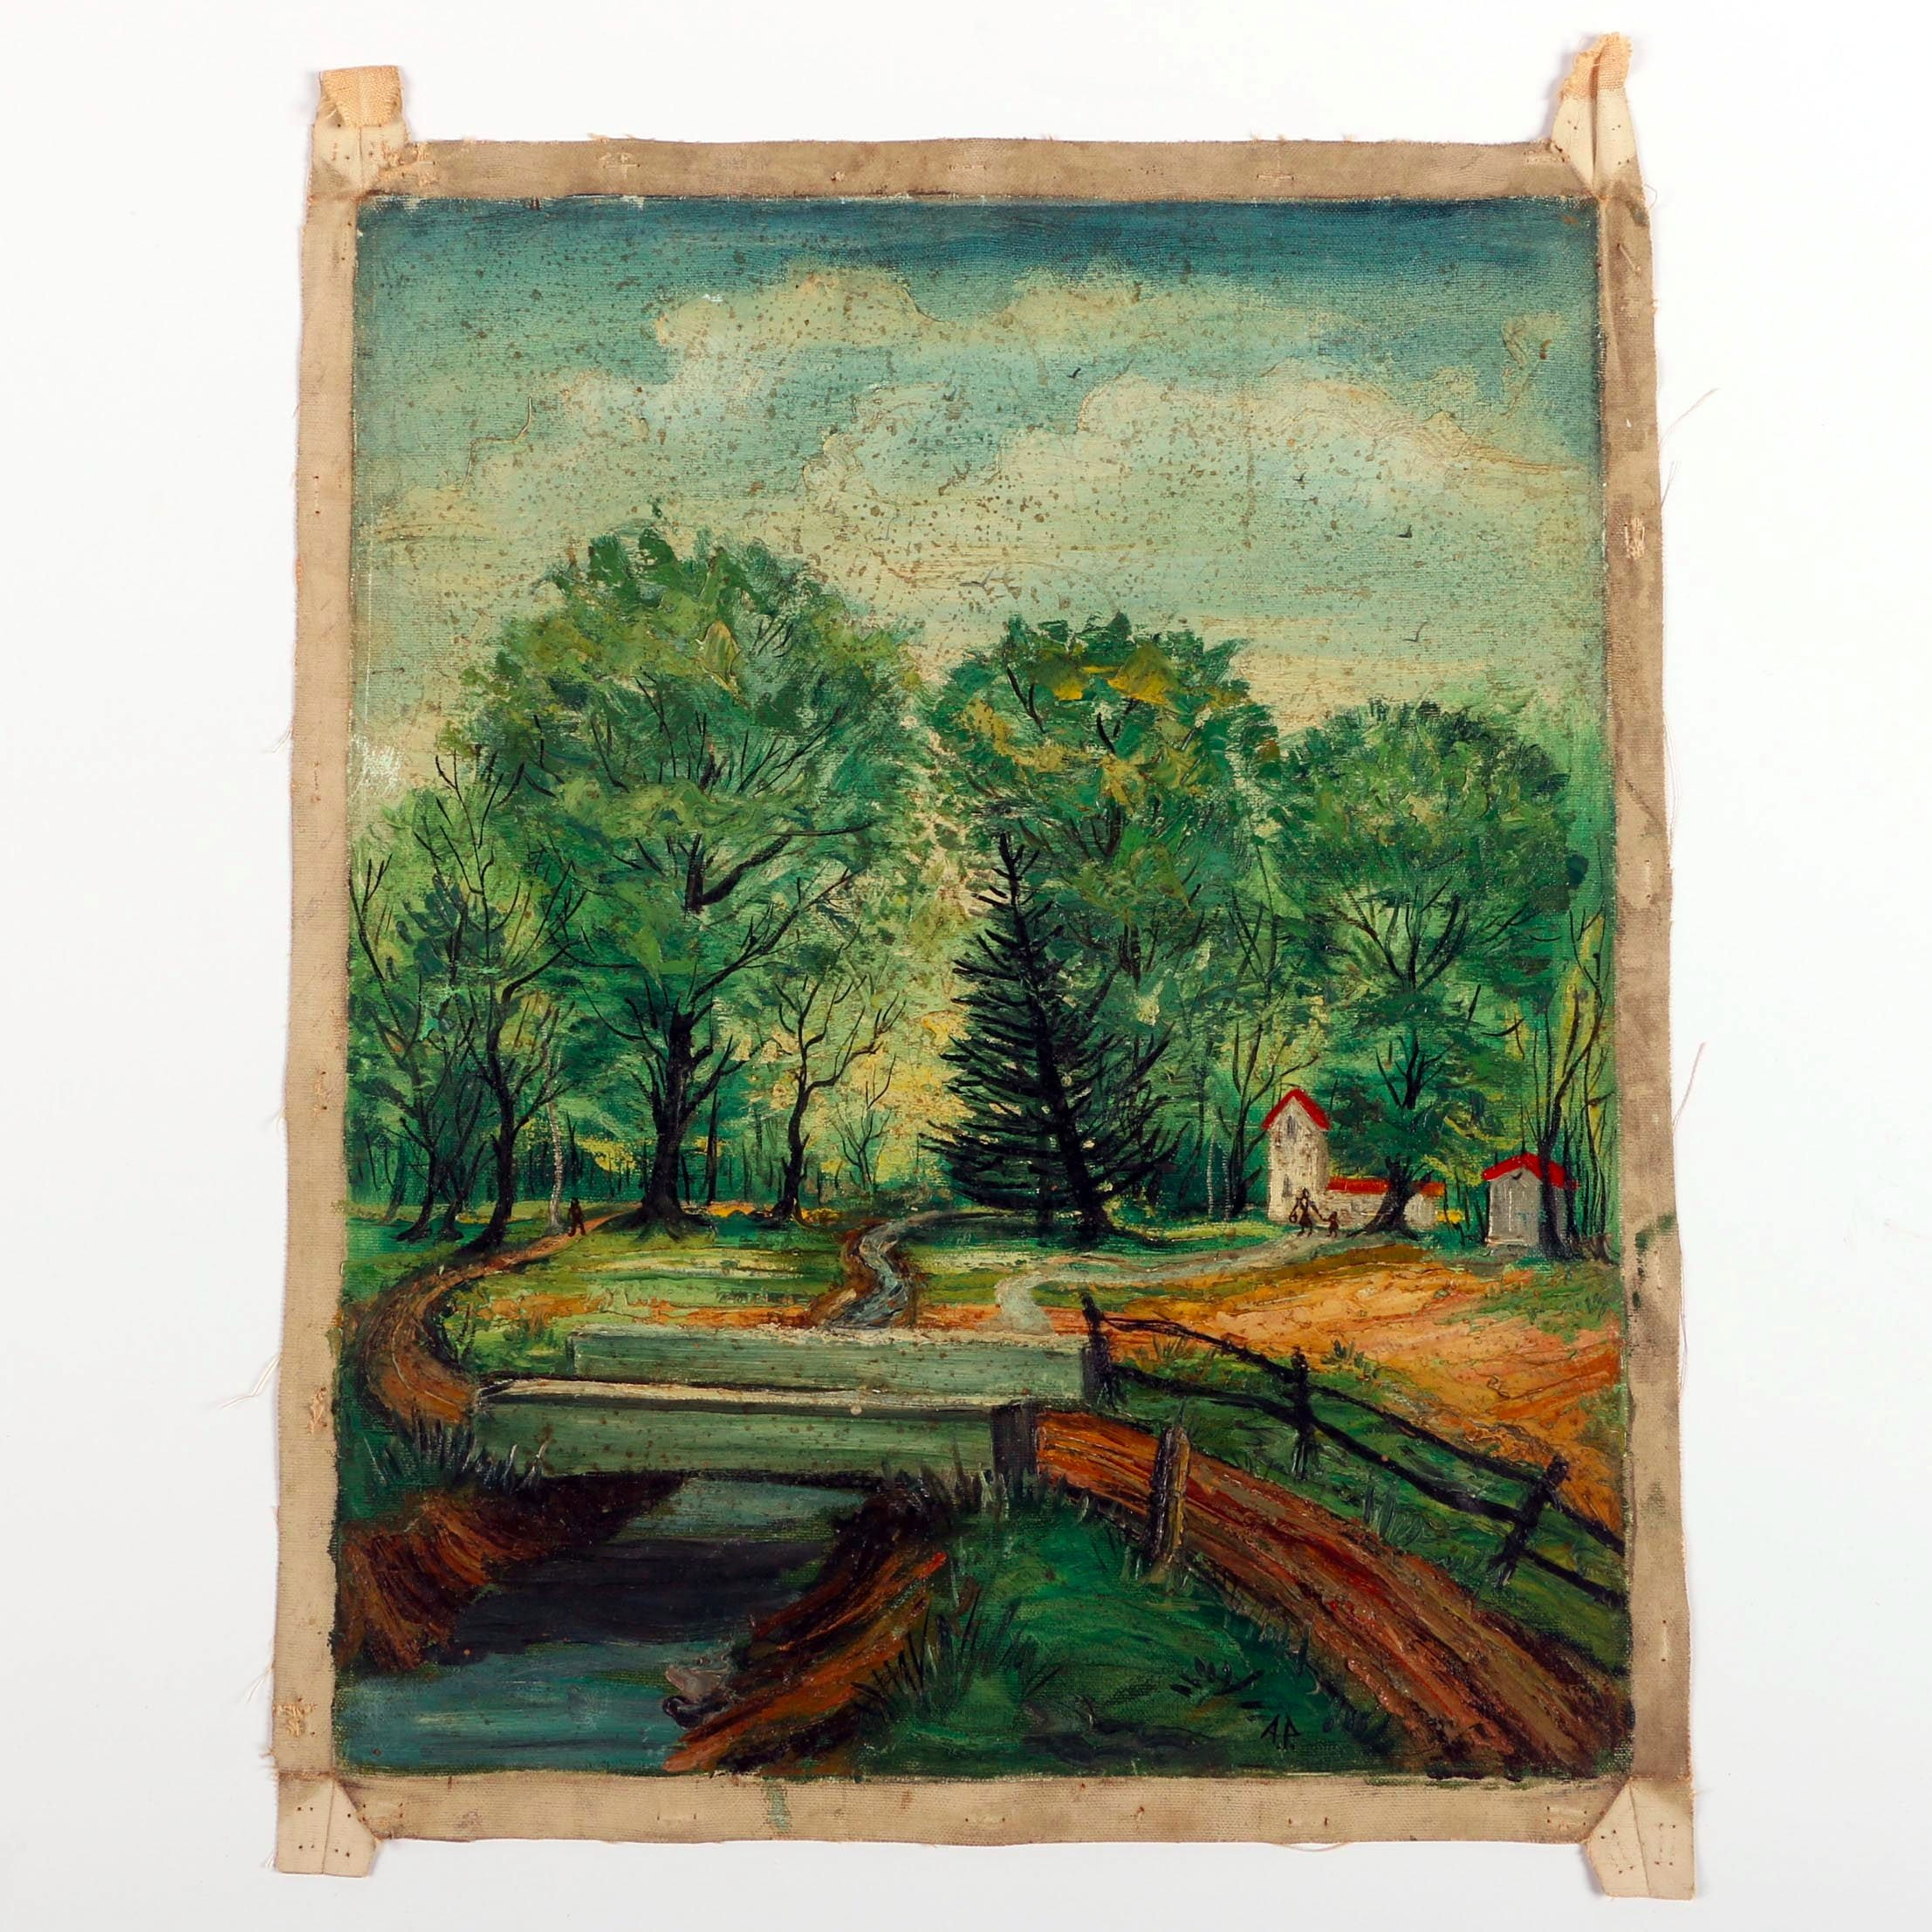 Albert Pels Oil Painting on Unstretched Canvas of an Ohio Landscape